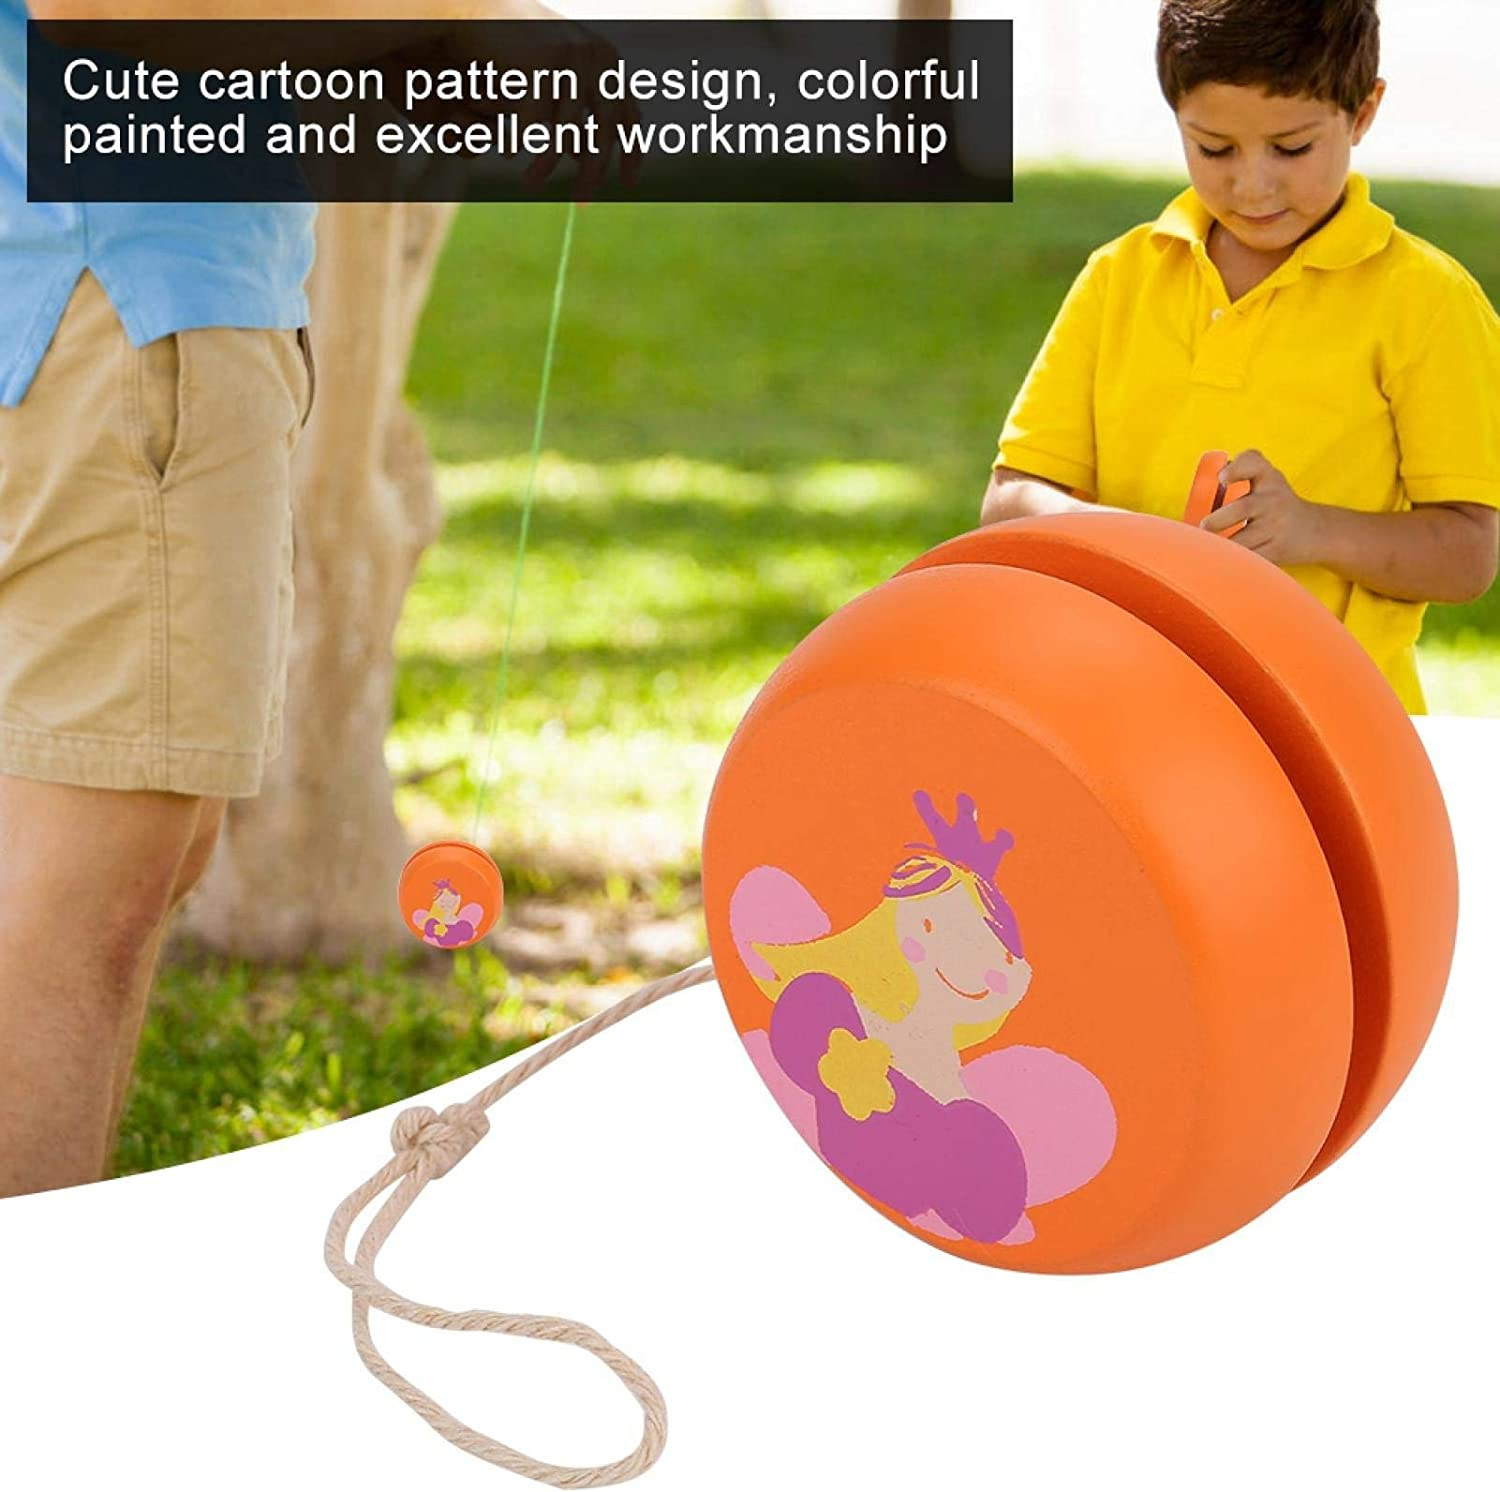 w Vbestlife Wooden Yoyo Ball with Cute Cartoon Pattern,Toy Early Education Teaching Toy for Kid Child,Kids Beginner,Train Kids Cognitive Ability and Flexibility.